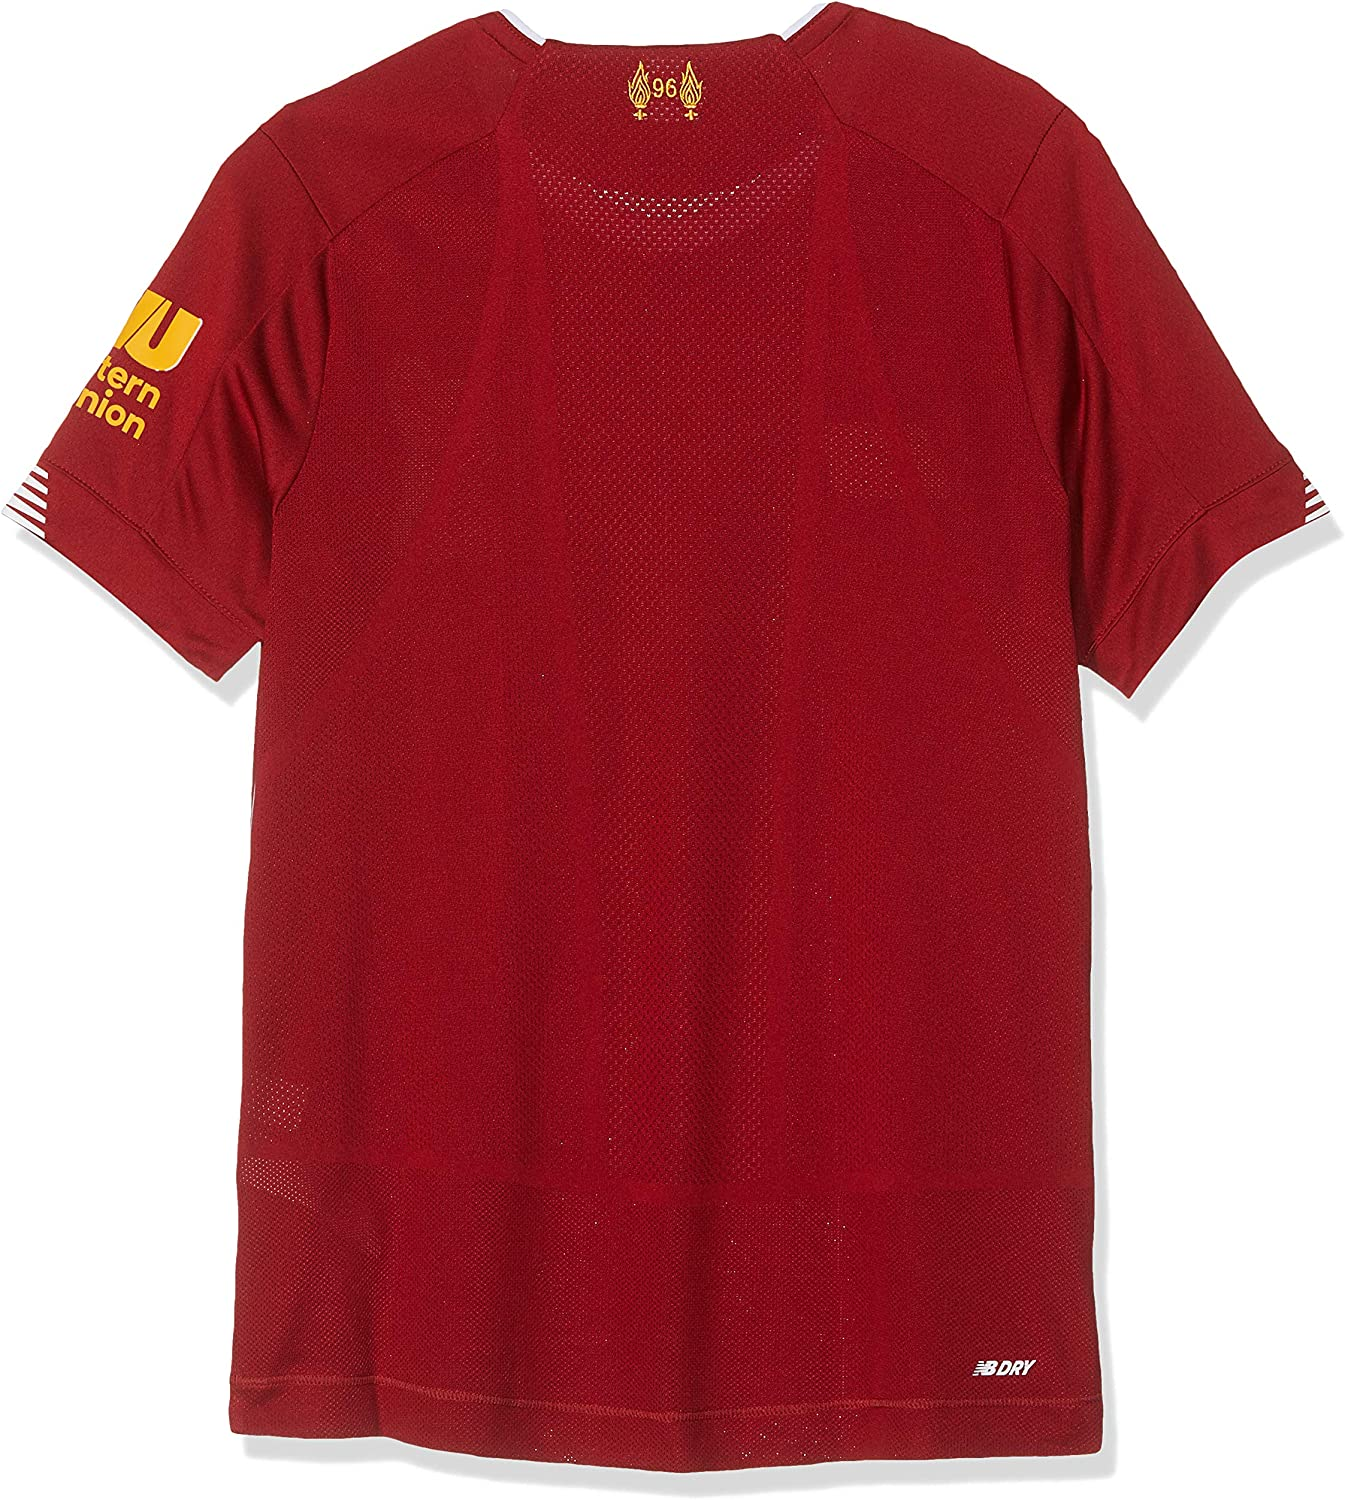 New Balance International Soccer Boys 2019-2020 Short Sleeve Jersey